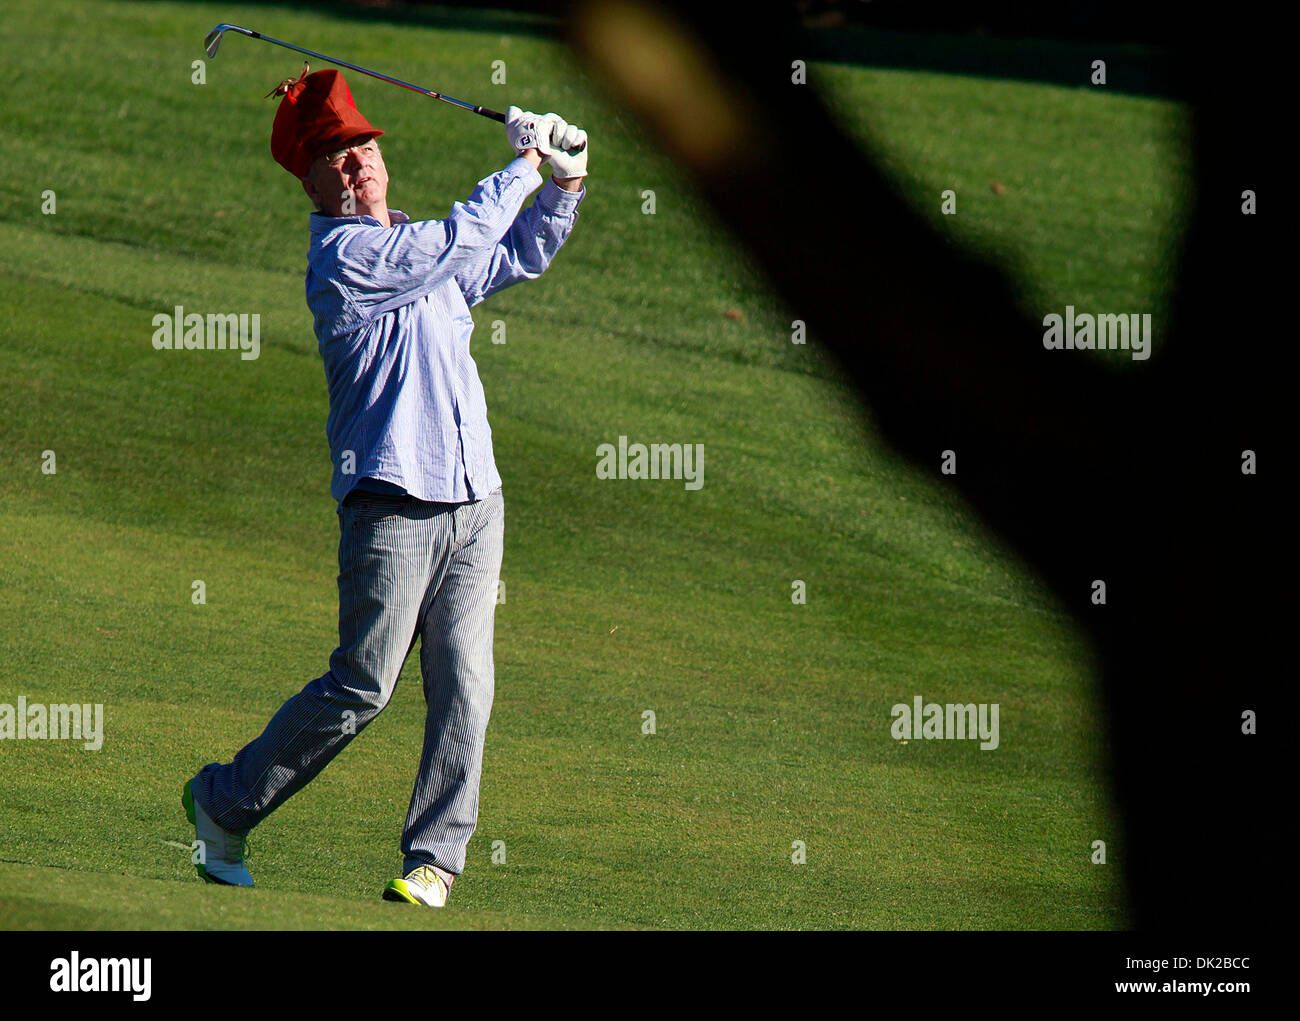 Feb. 12, 2011 - Pebble Beach, California, U.S. - BILL MURRAY chips his ball onto the sixteenth green during the third round of the AT&T Pebble Beach National Pro-Am at Pebble Beach Golf Links in Pebble Beach. (Credit Image: © Monterey Herald/ZUMAPRESS.com) - Stock Image